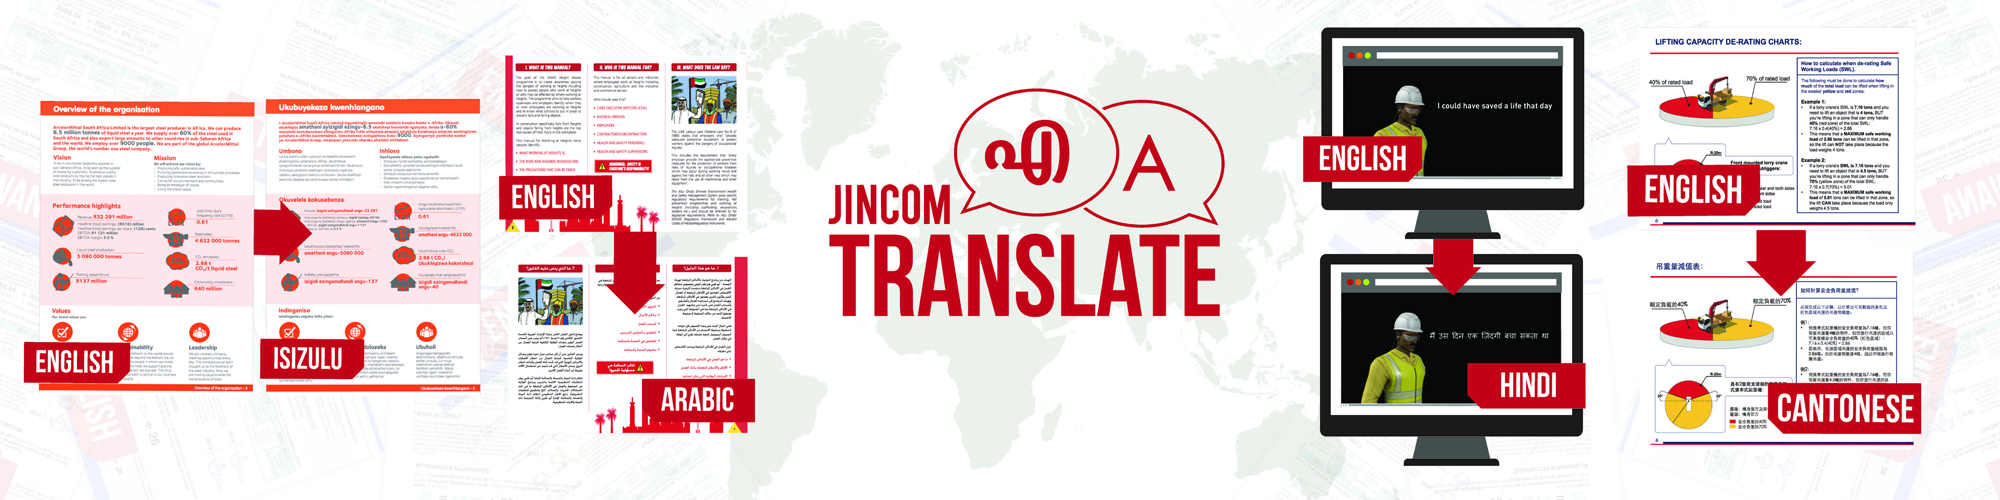 Jincom Translate